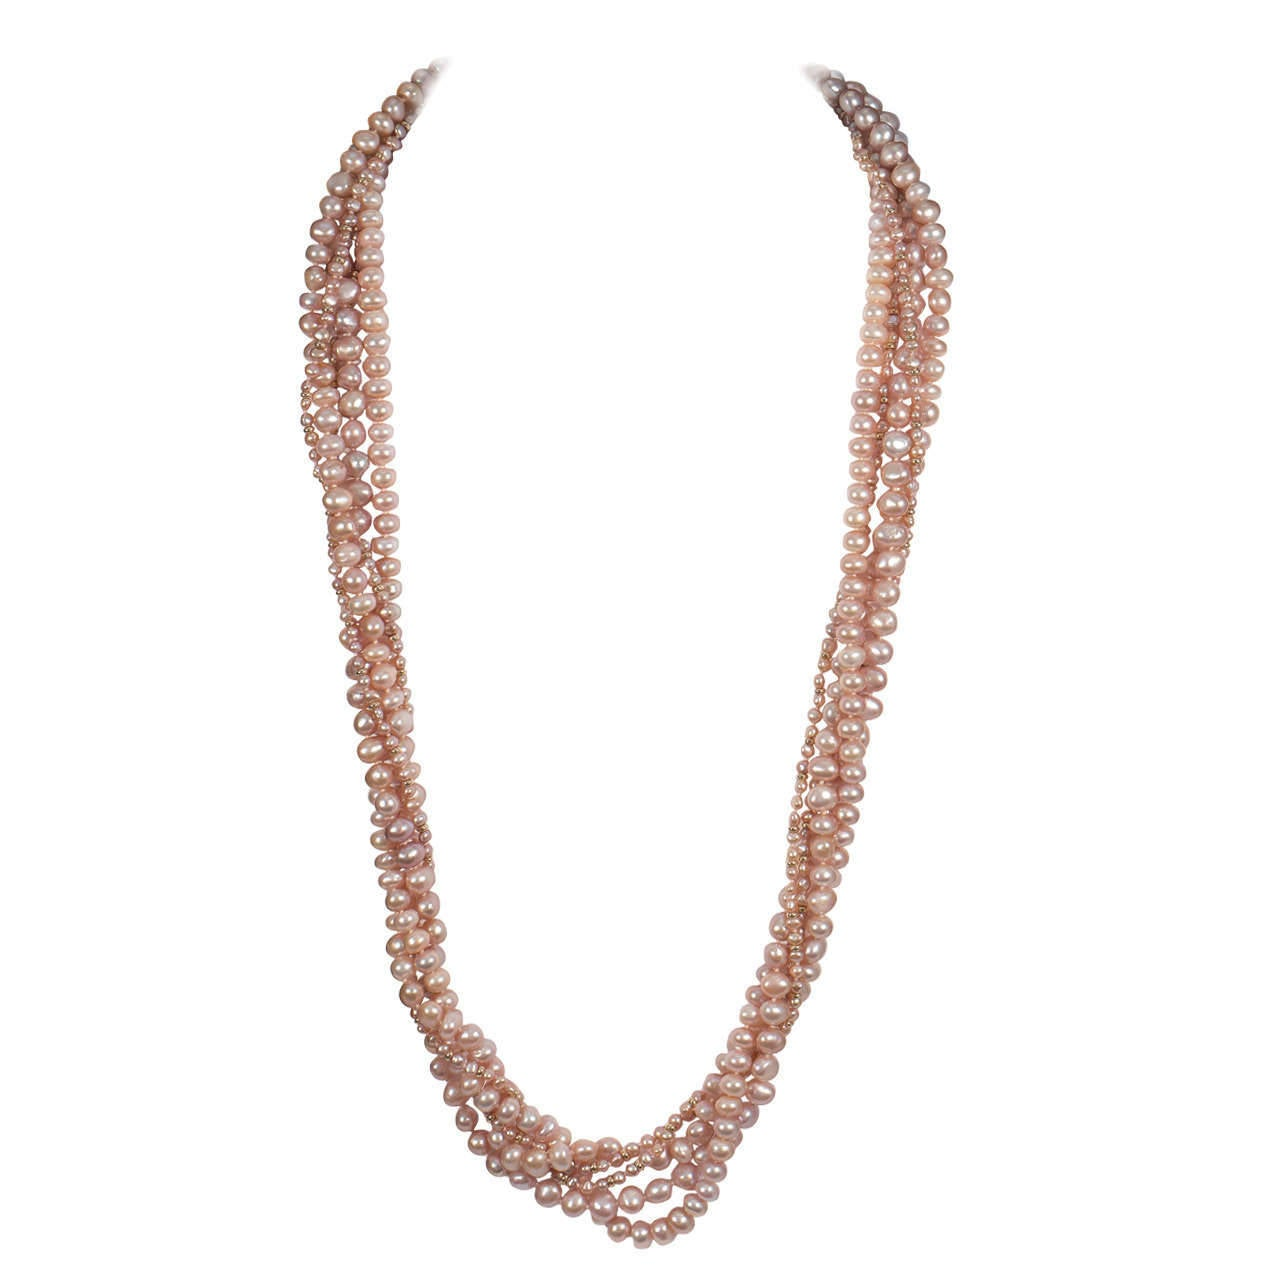 Naomi Sarna Five Strand Pink Pearl Gold Necklace 10